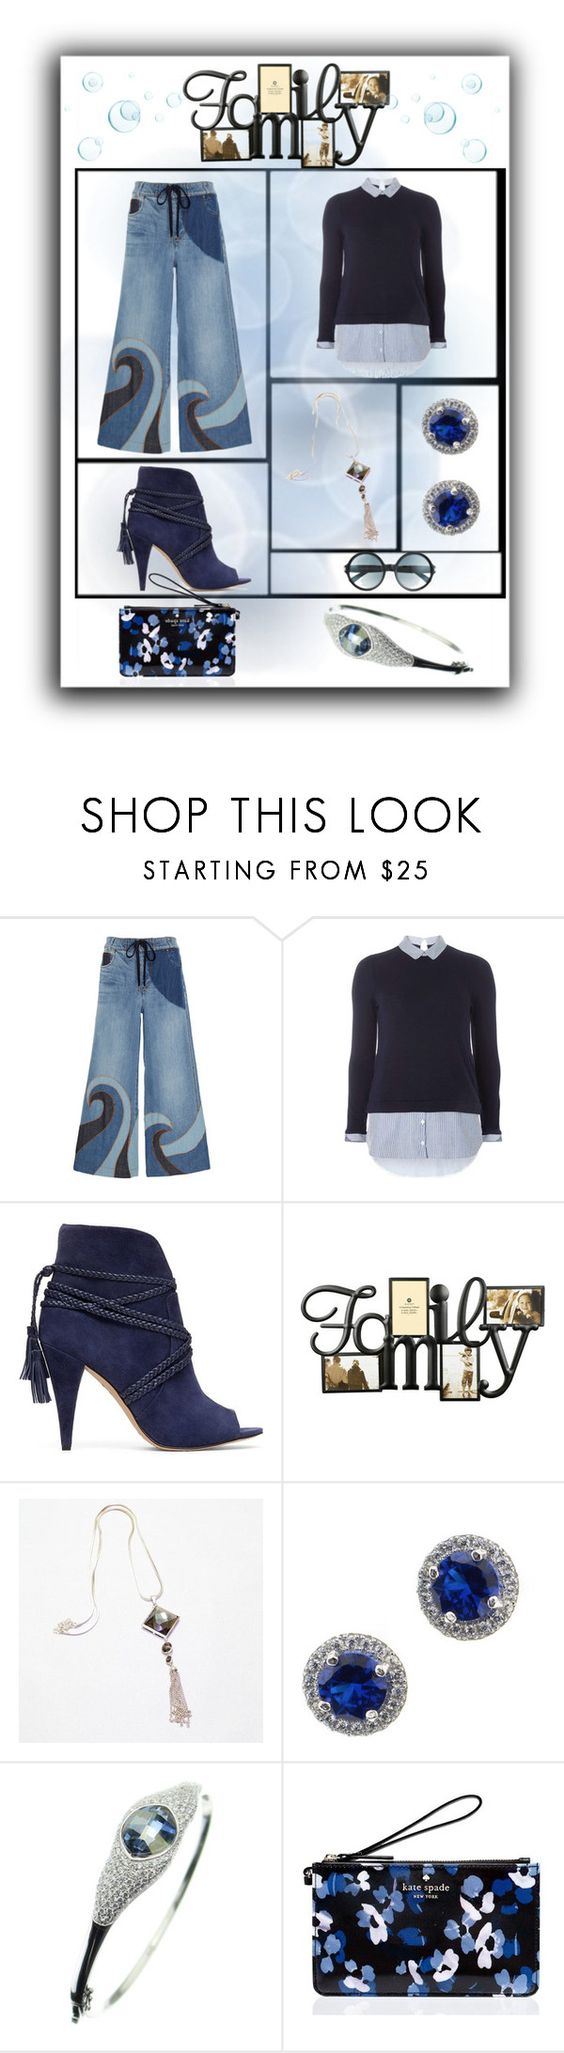 """Style Me #Denim"" by freida-adams ❤ liked on Polyvore featuring RED Valentino, Dorothy Perkins, Vince Camuto, Kate Spade, Tom Ford, denim and bellastreasure"